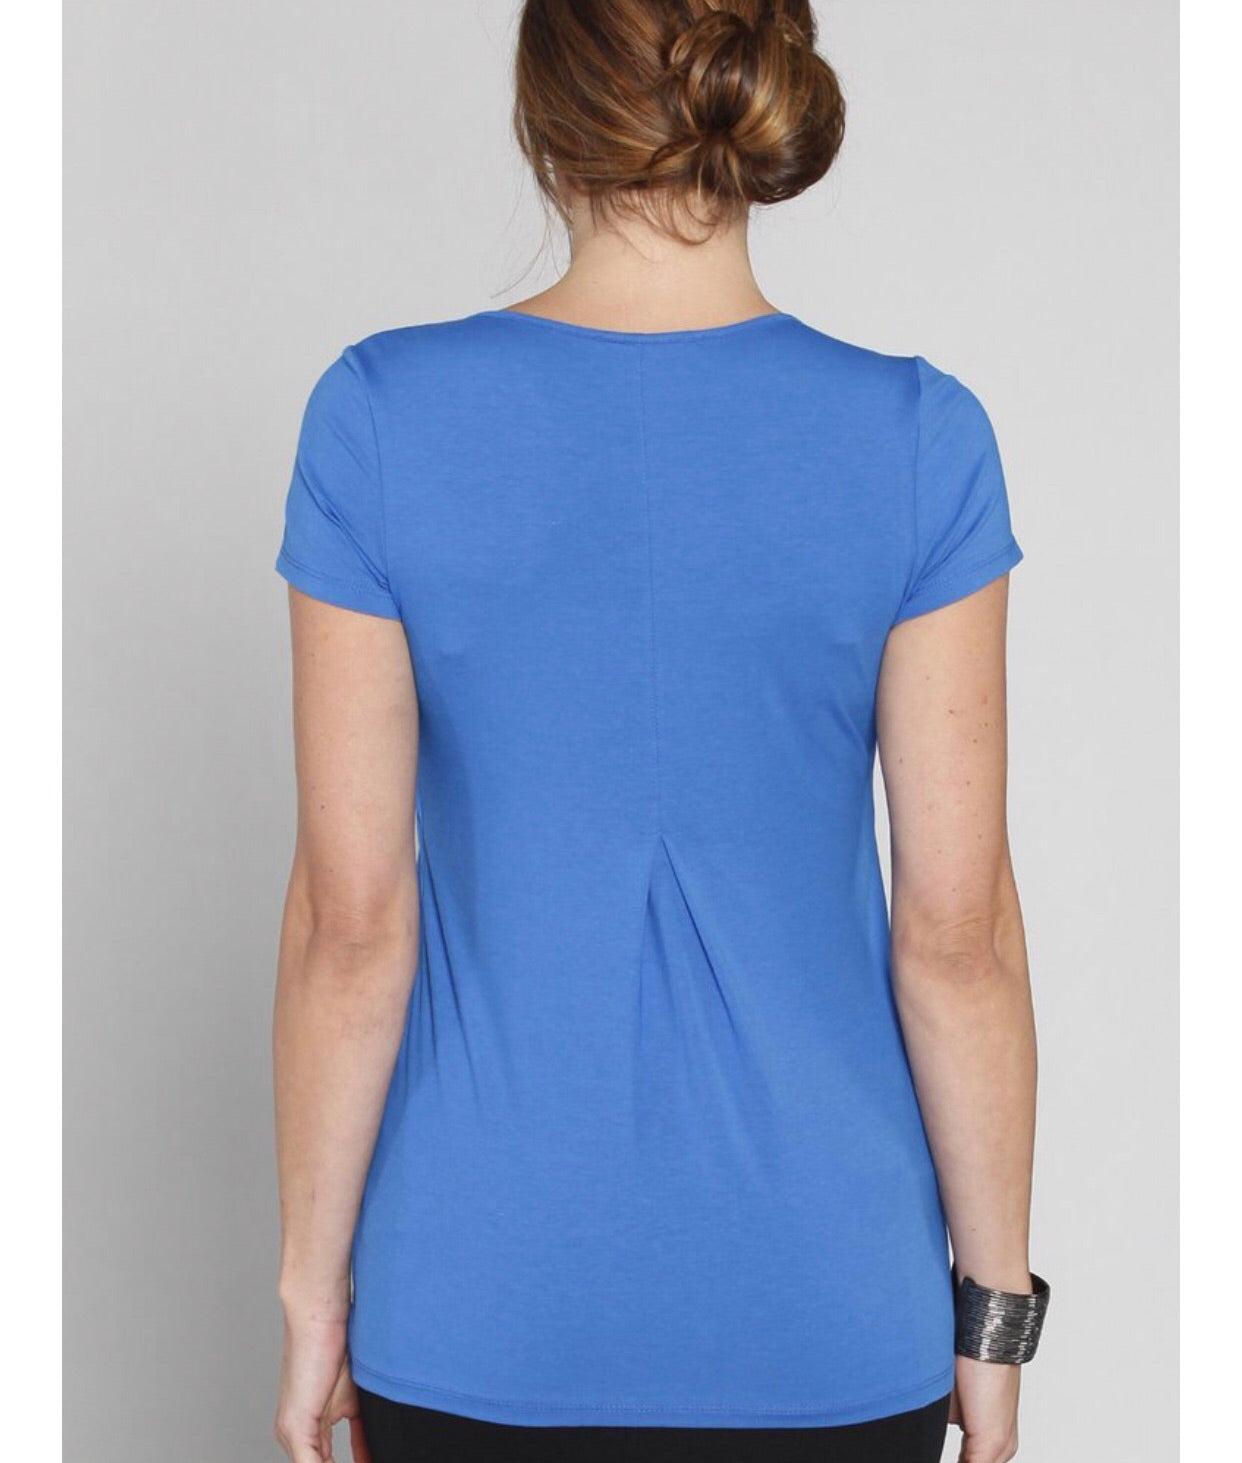 Angel Maternity Short Sleeved Petal Front Nursing Top - Blue